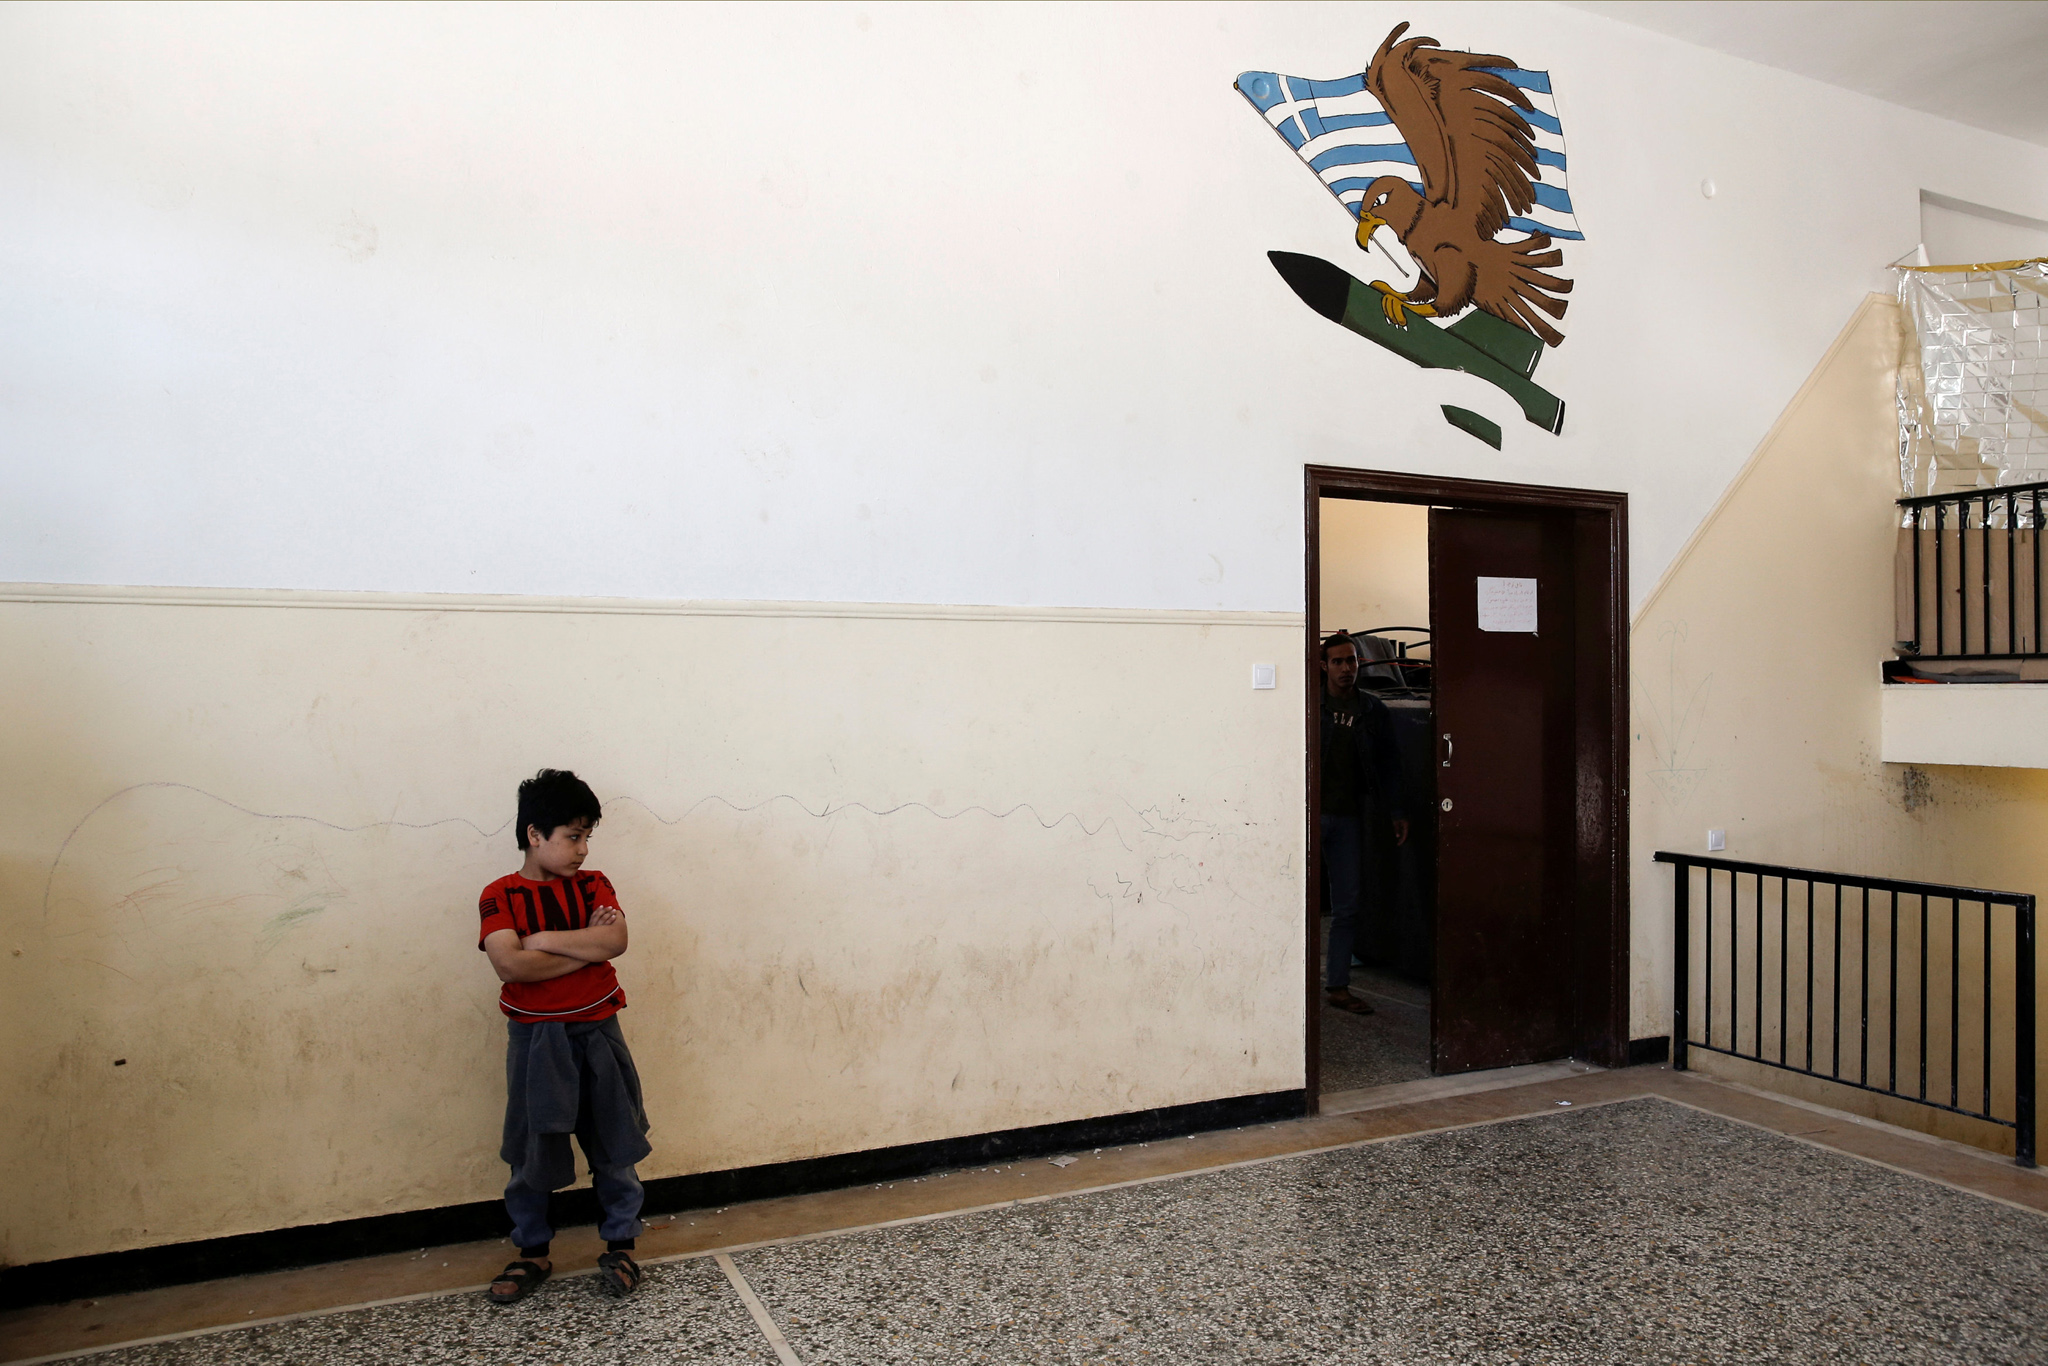 A boy stands inside a building used as sleeping quarters at camp for refugees and migrants in Schisto, near Athens...A boy stands inside a building used as sleeping quarters at camp for refugees and migrants in Schisto, near Athens, Greece, April 26, 2016. REUTERS/Alkis Konstantinidis GREECE OUT. NO COMMERCIAL OR EDITORIAL SALES IN GREECE